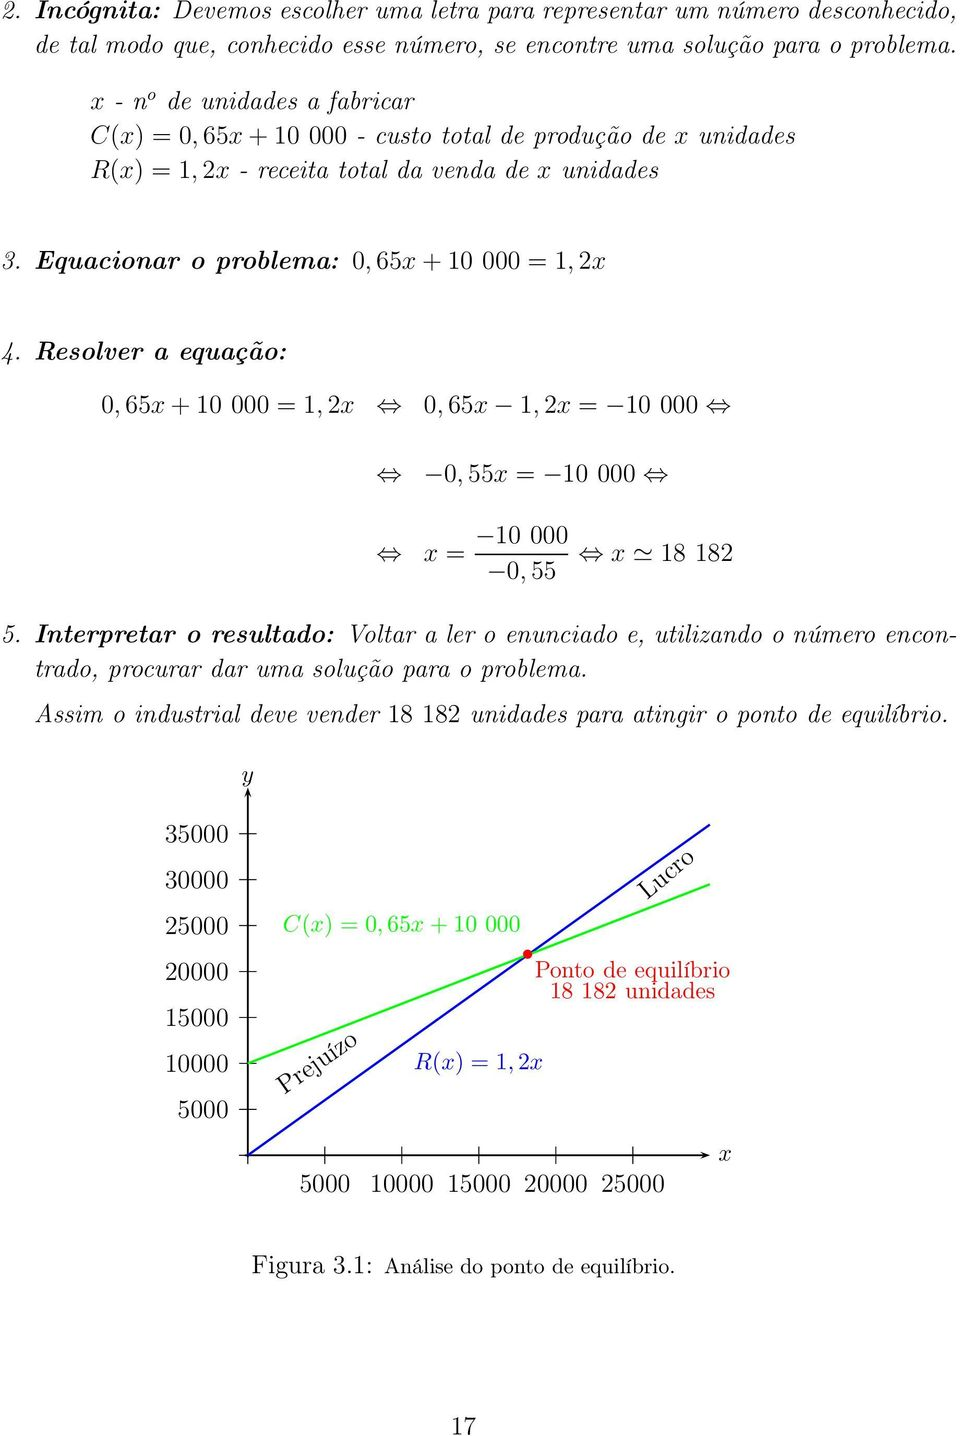 Resolver a equação: 0, 65 + 10 000 = 1, 0, 65 1, = 10 000 0, 55 = 10 000 = 10 000 0, 55 18 18 5.